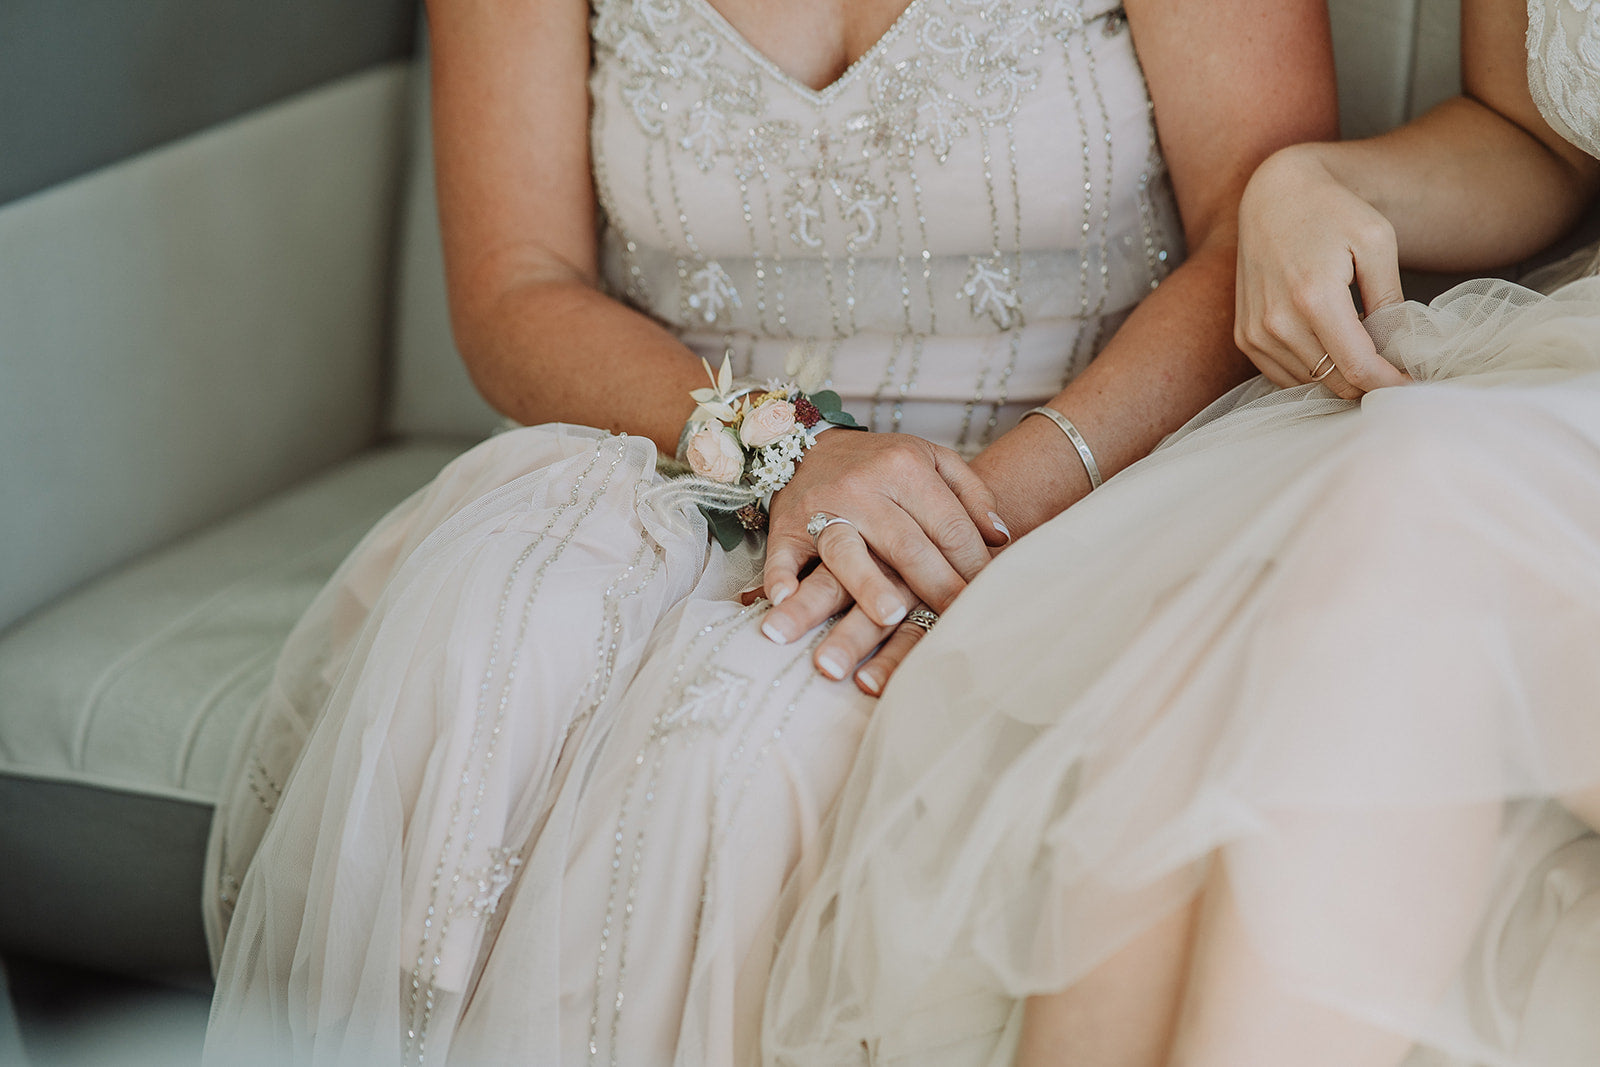 Eco-friendly wedding corsage, worn on the wrist. Close up of two women, seated, wearing bridal and mother of the bride dresses in neutral colours.